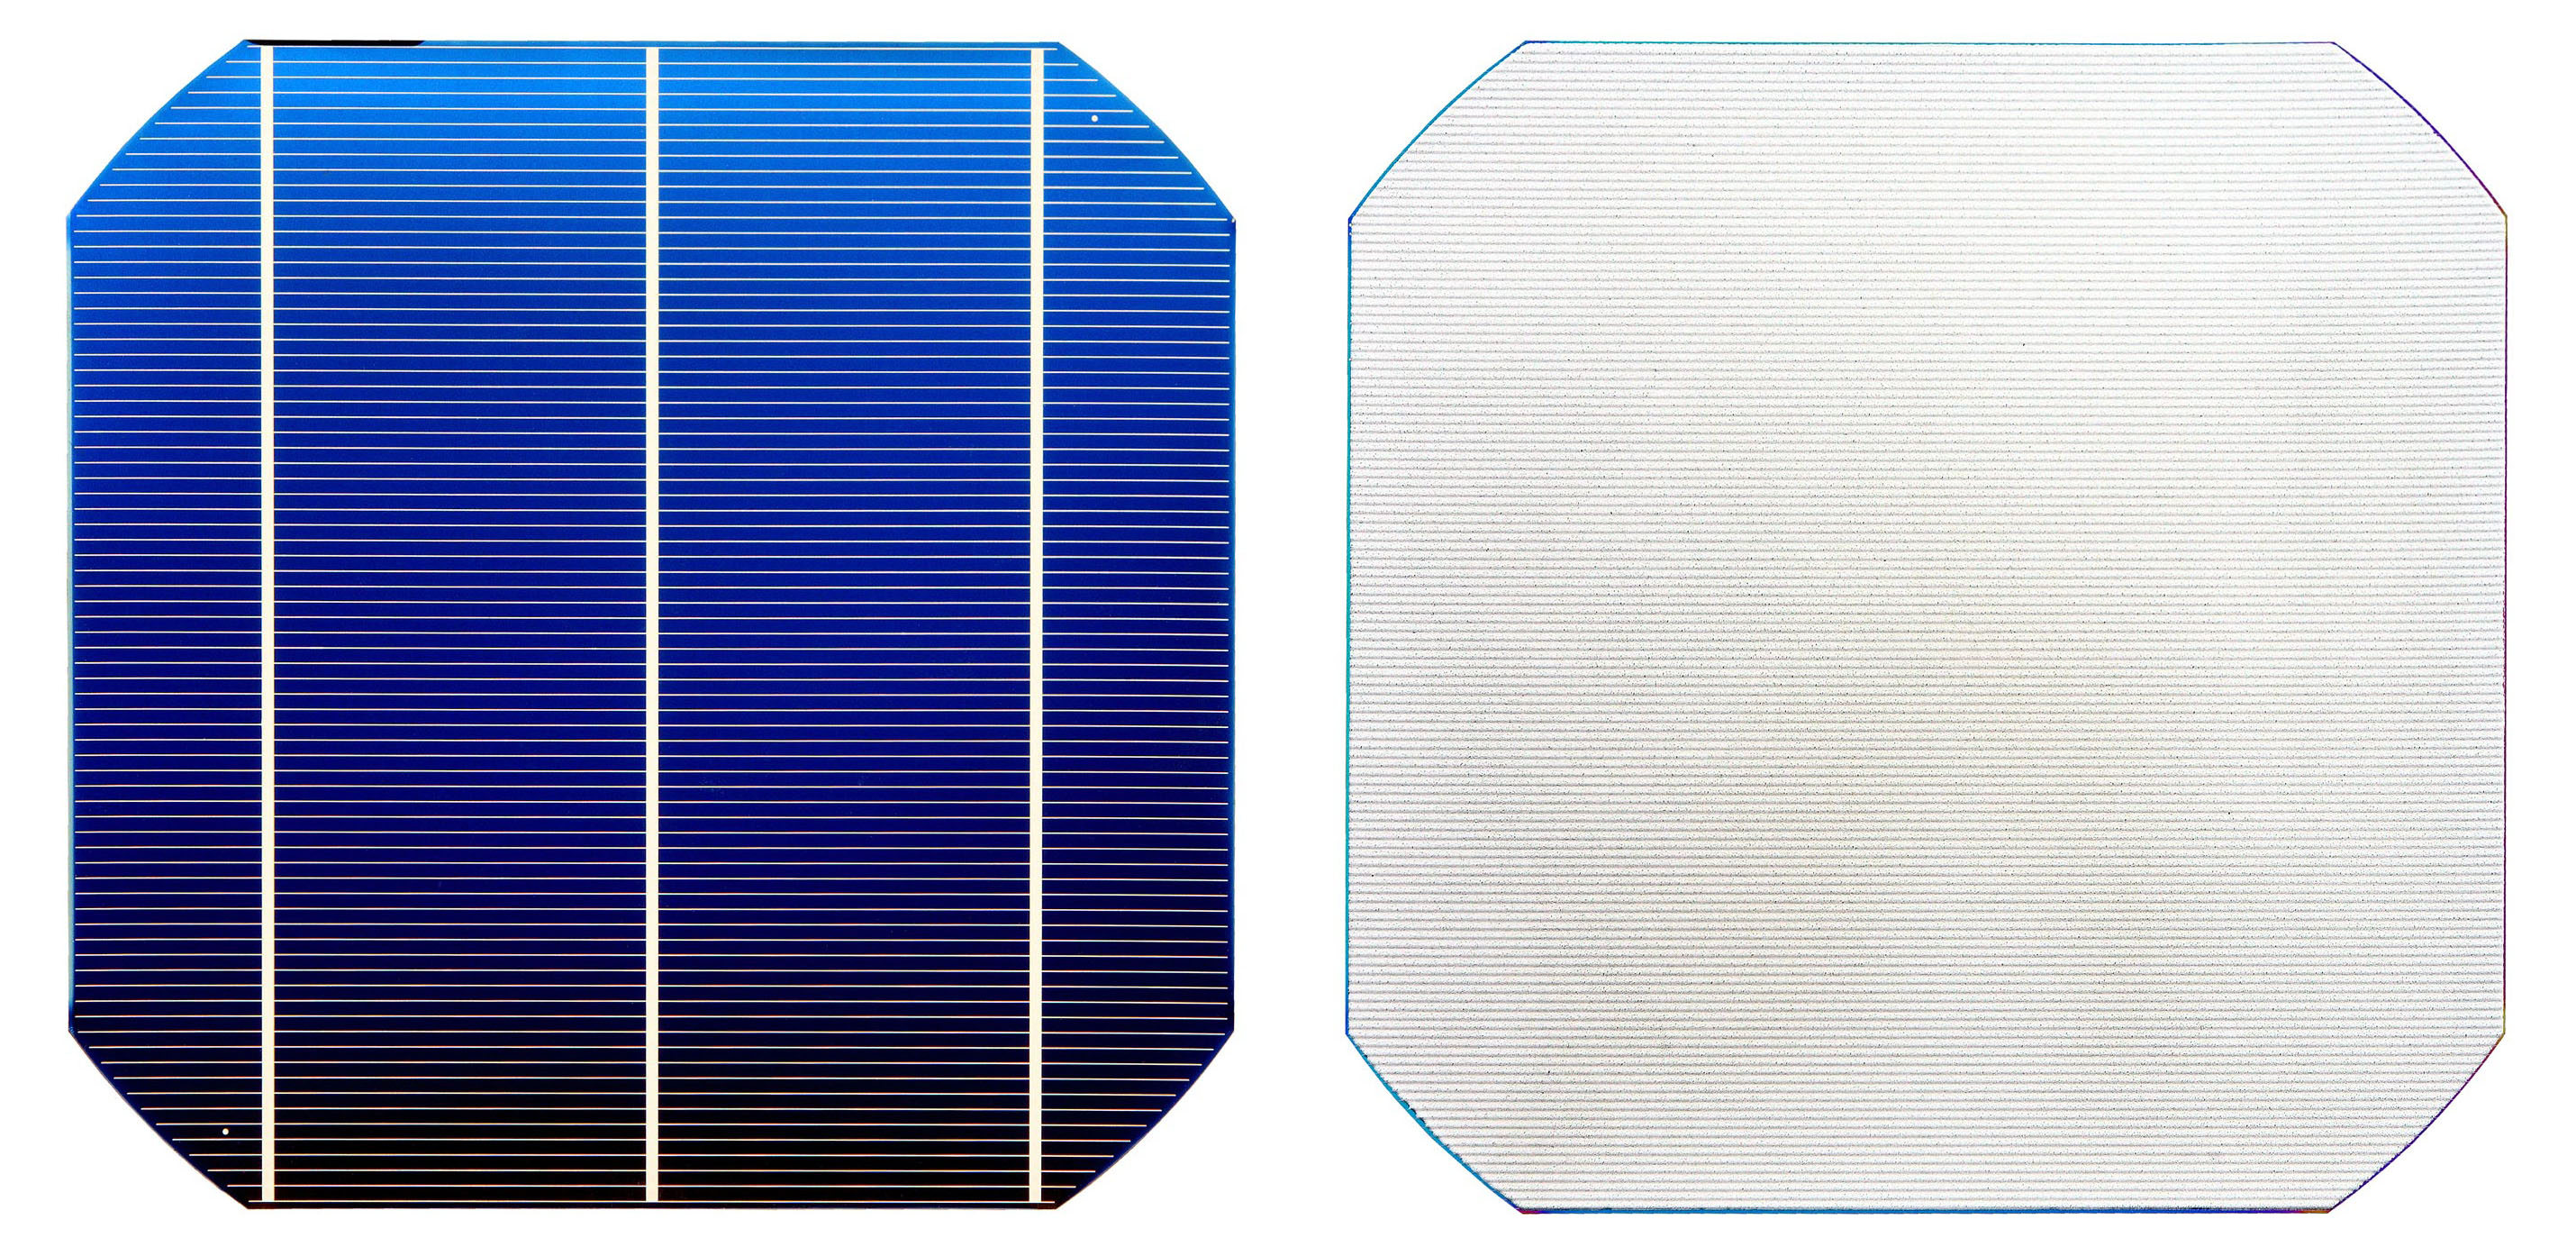 File:Silicon solar cell (PERC) front and back.jpg - Wikimedia Commons